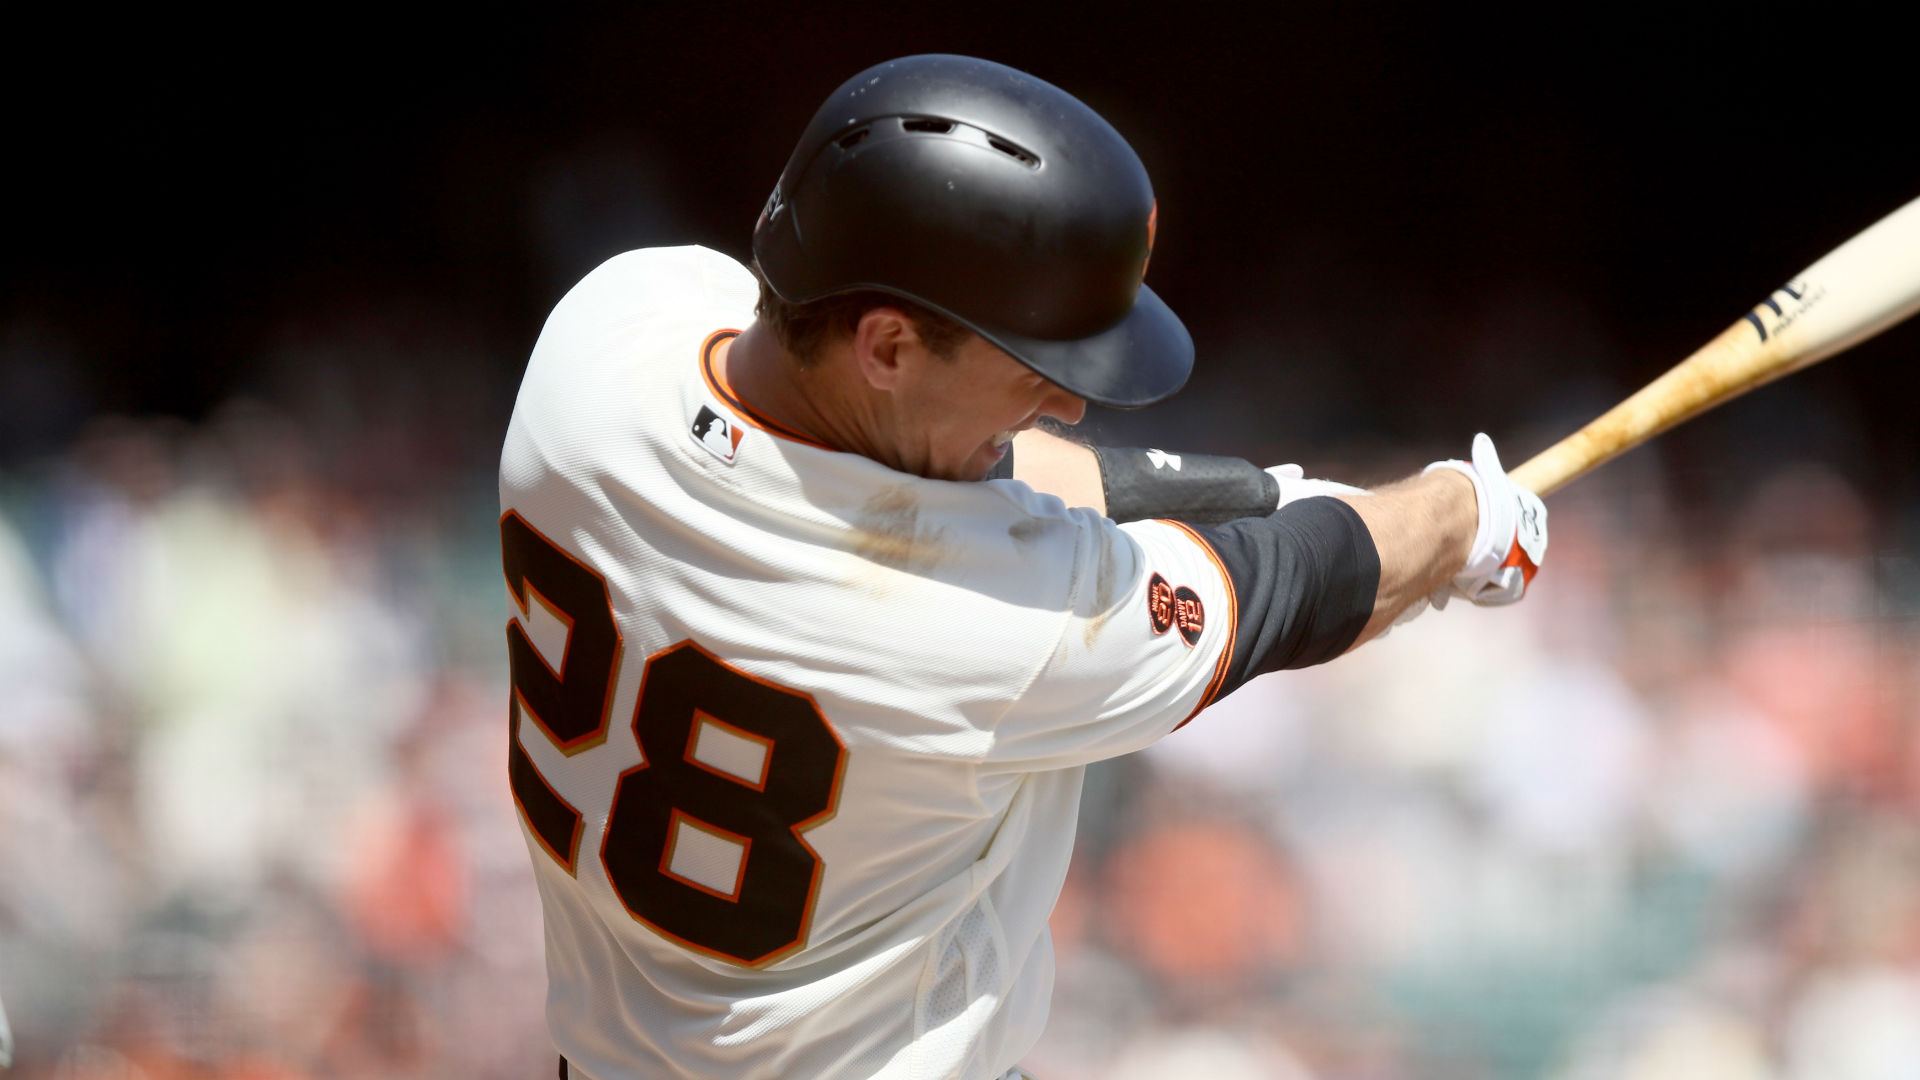 Giants' Buster Posey placed on 7-day concussion disabled list